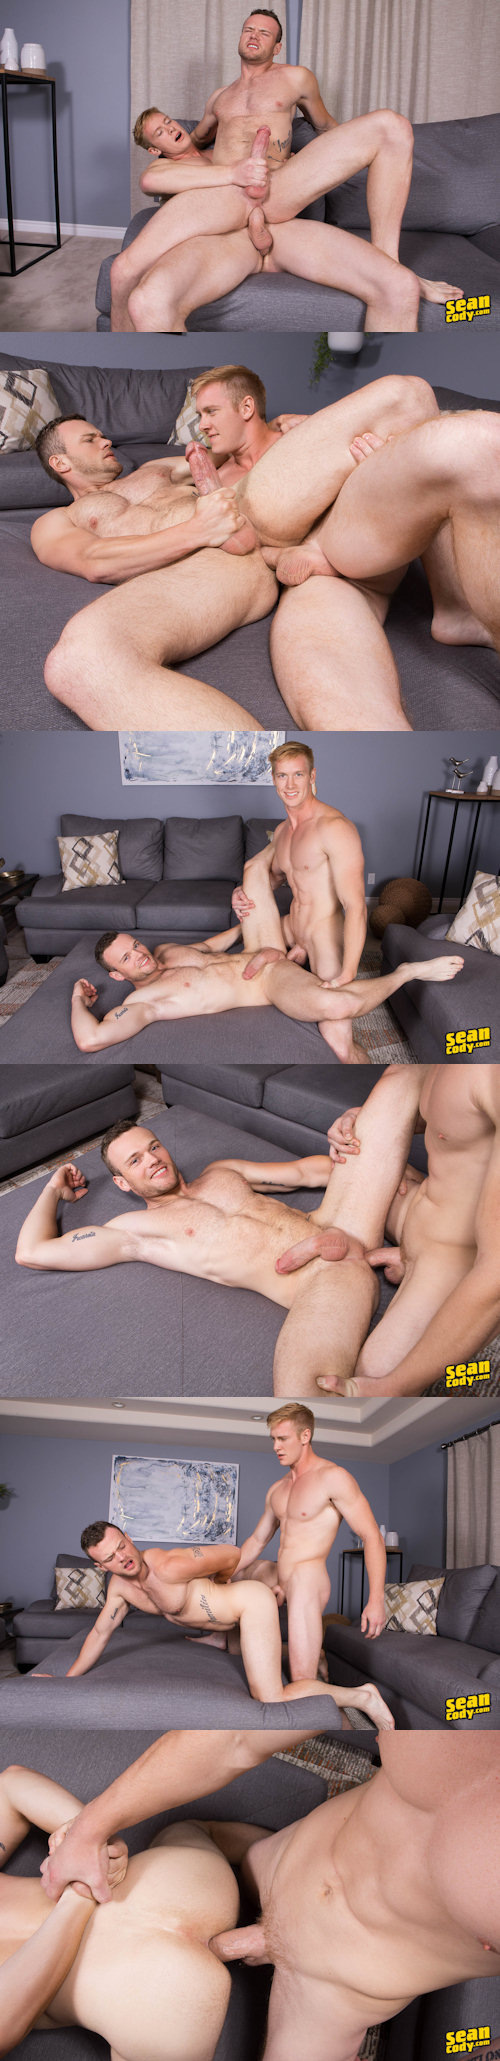 sean-cody-jax-sean-2.jpg